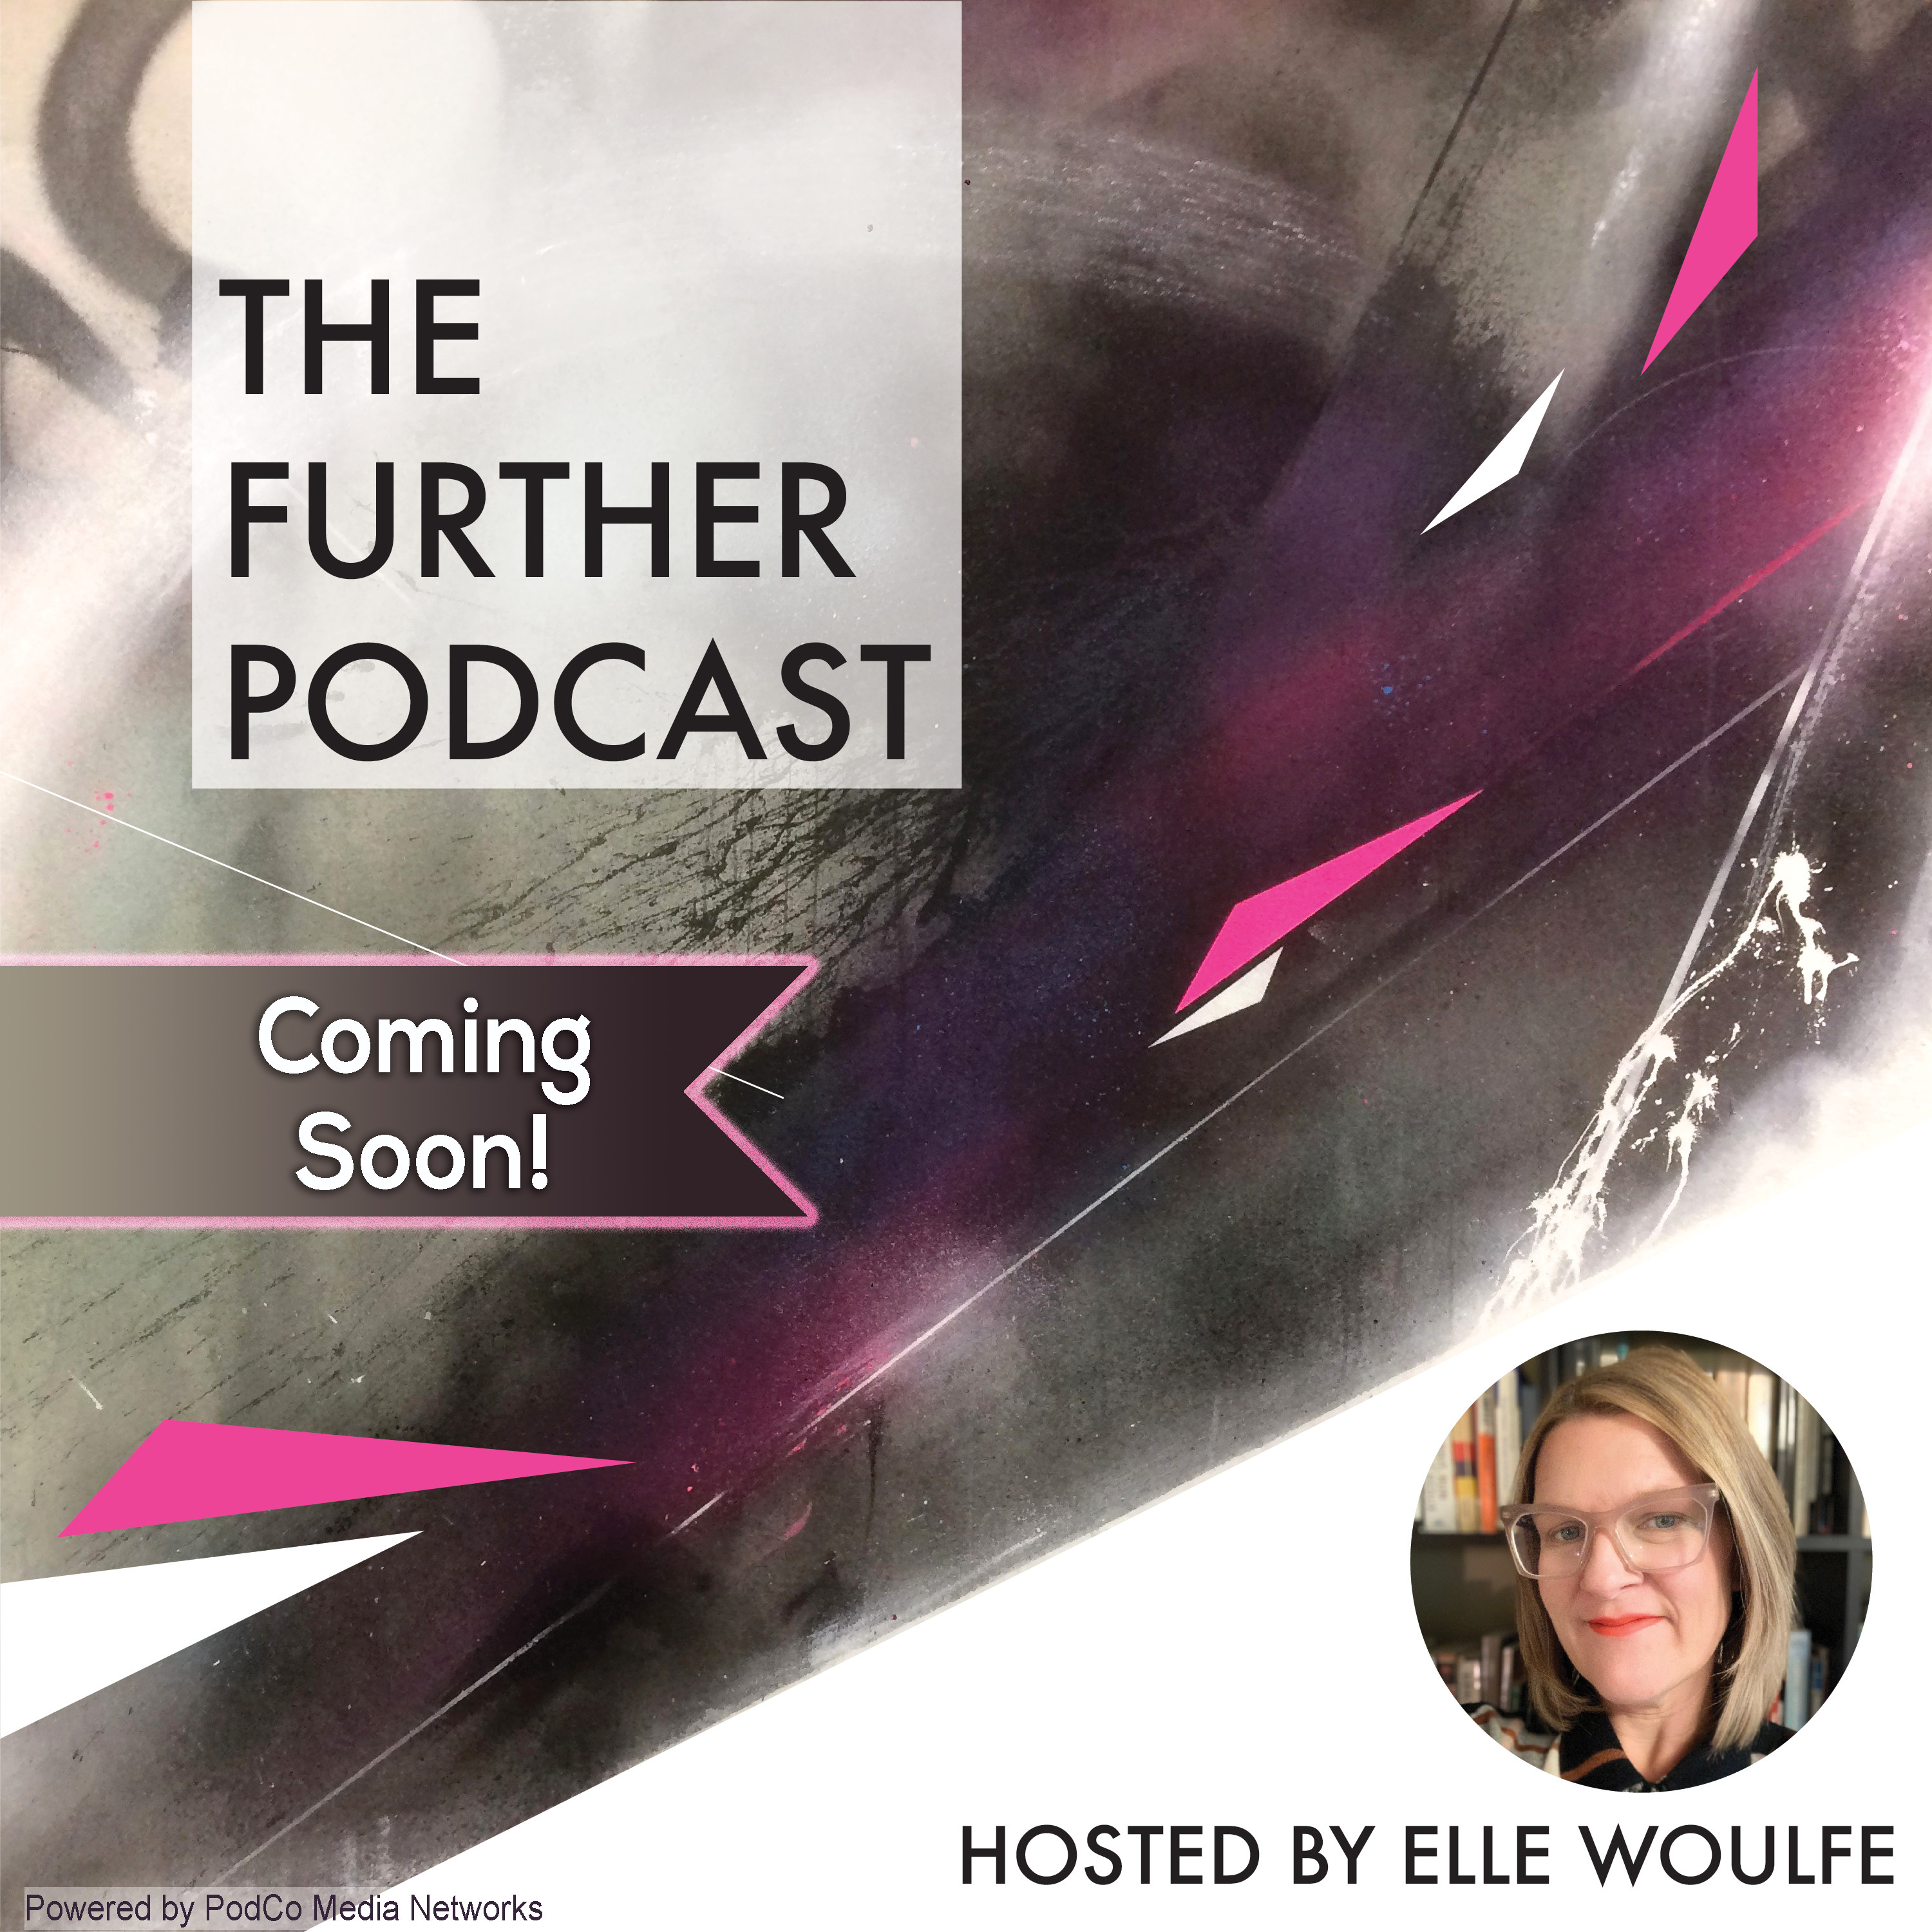 The Further Podcast